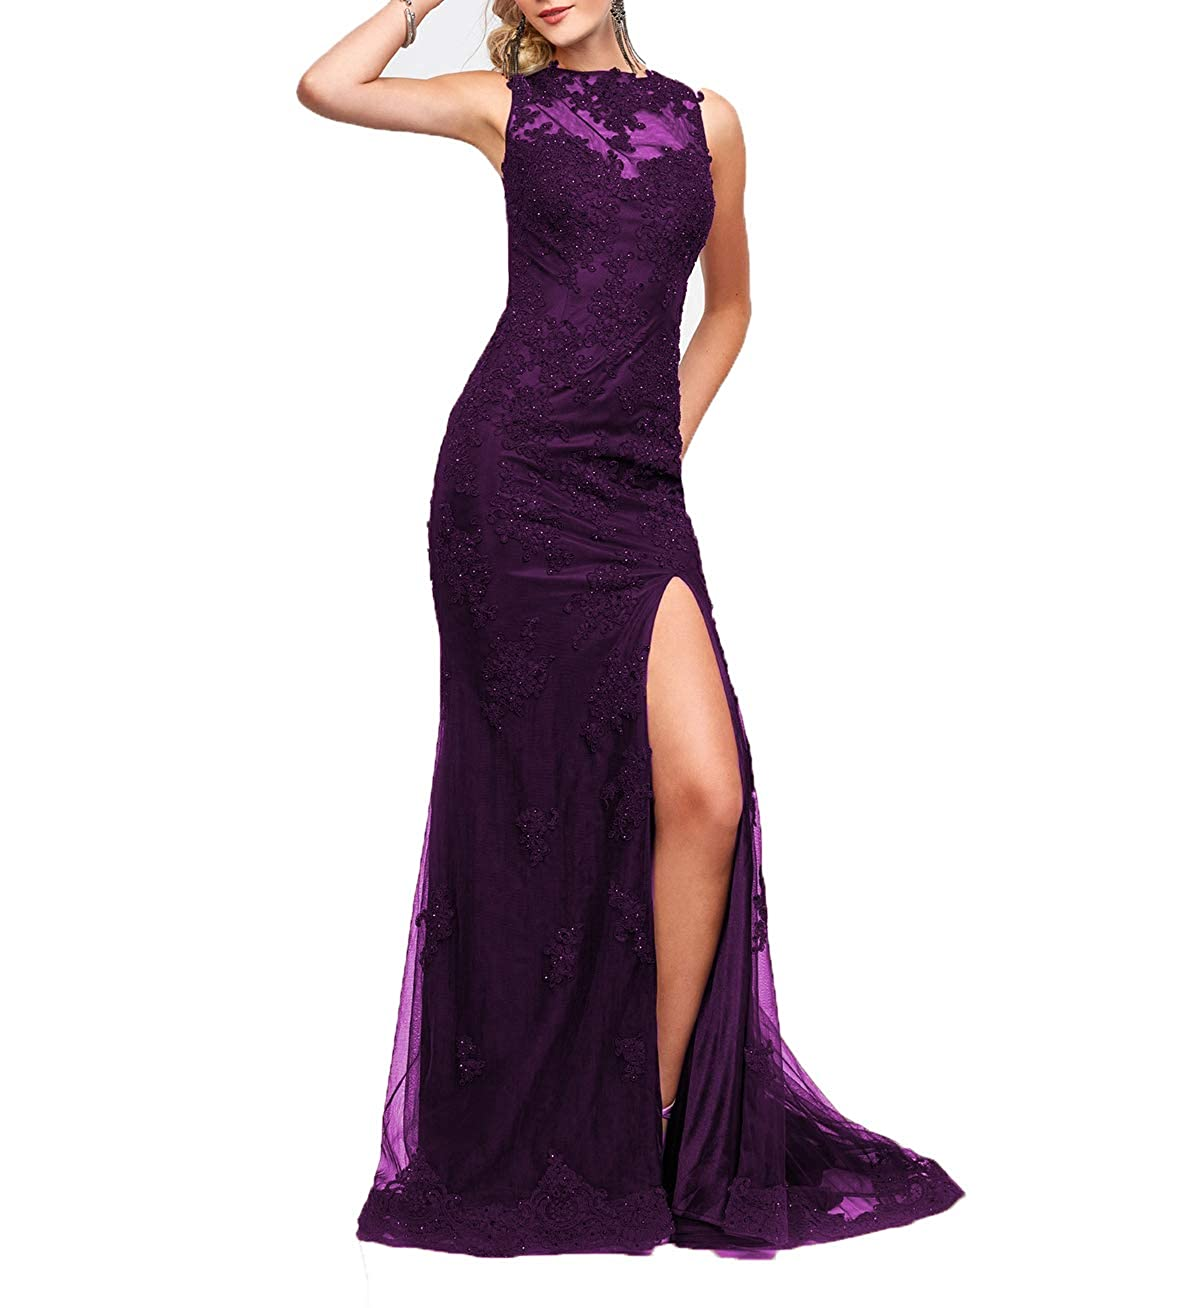 Darkmagenta Wanshaqin Cap Sleeveless Lace Mermaid Prom Formal Dresses Evening Cocktail Dress Bridesmaid Gowns for Events Party